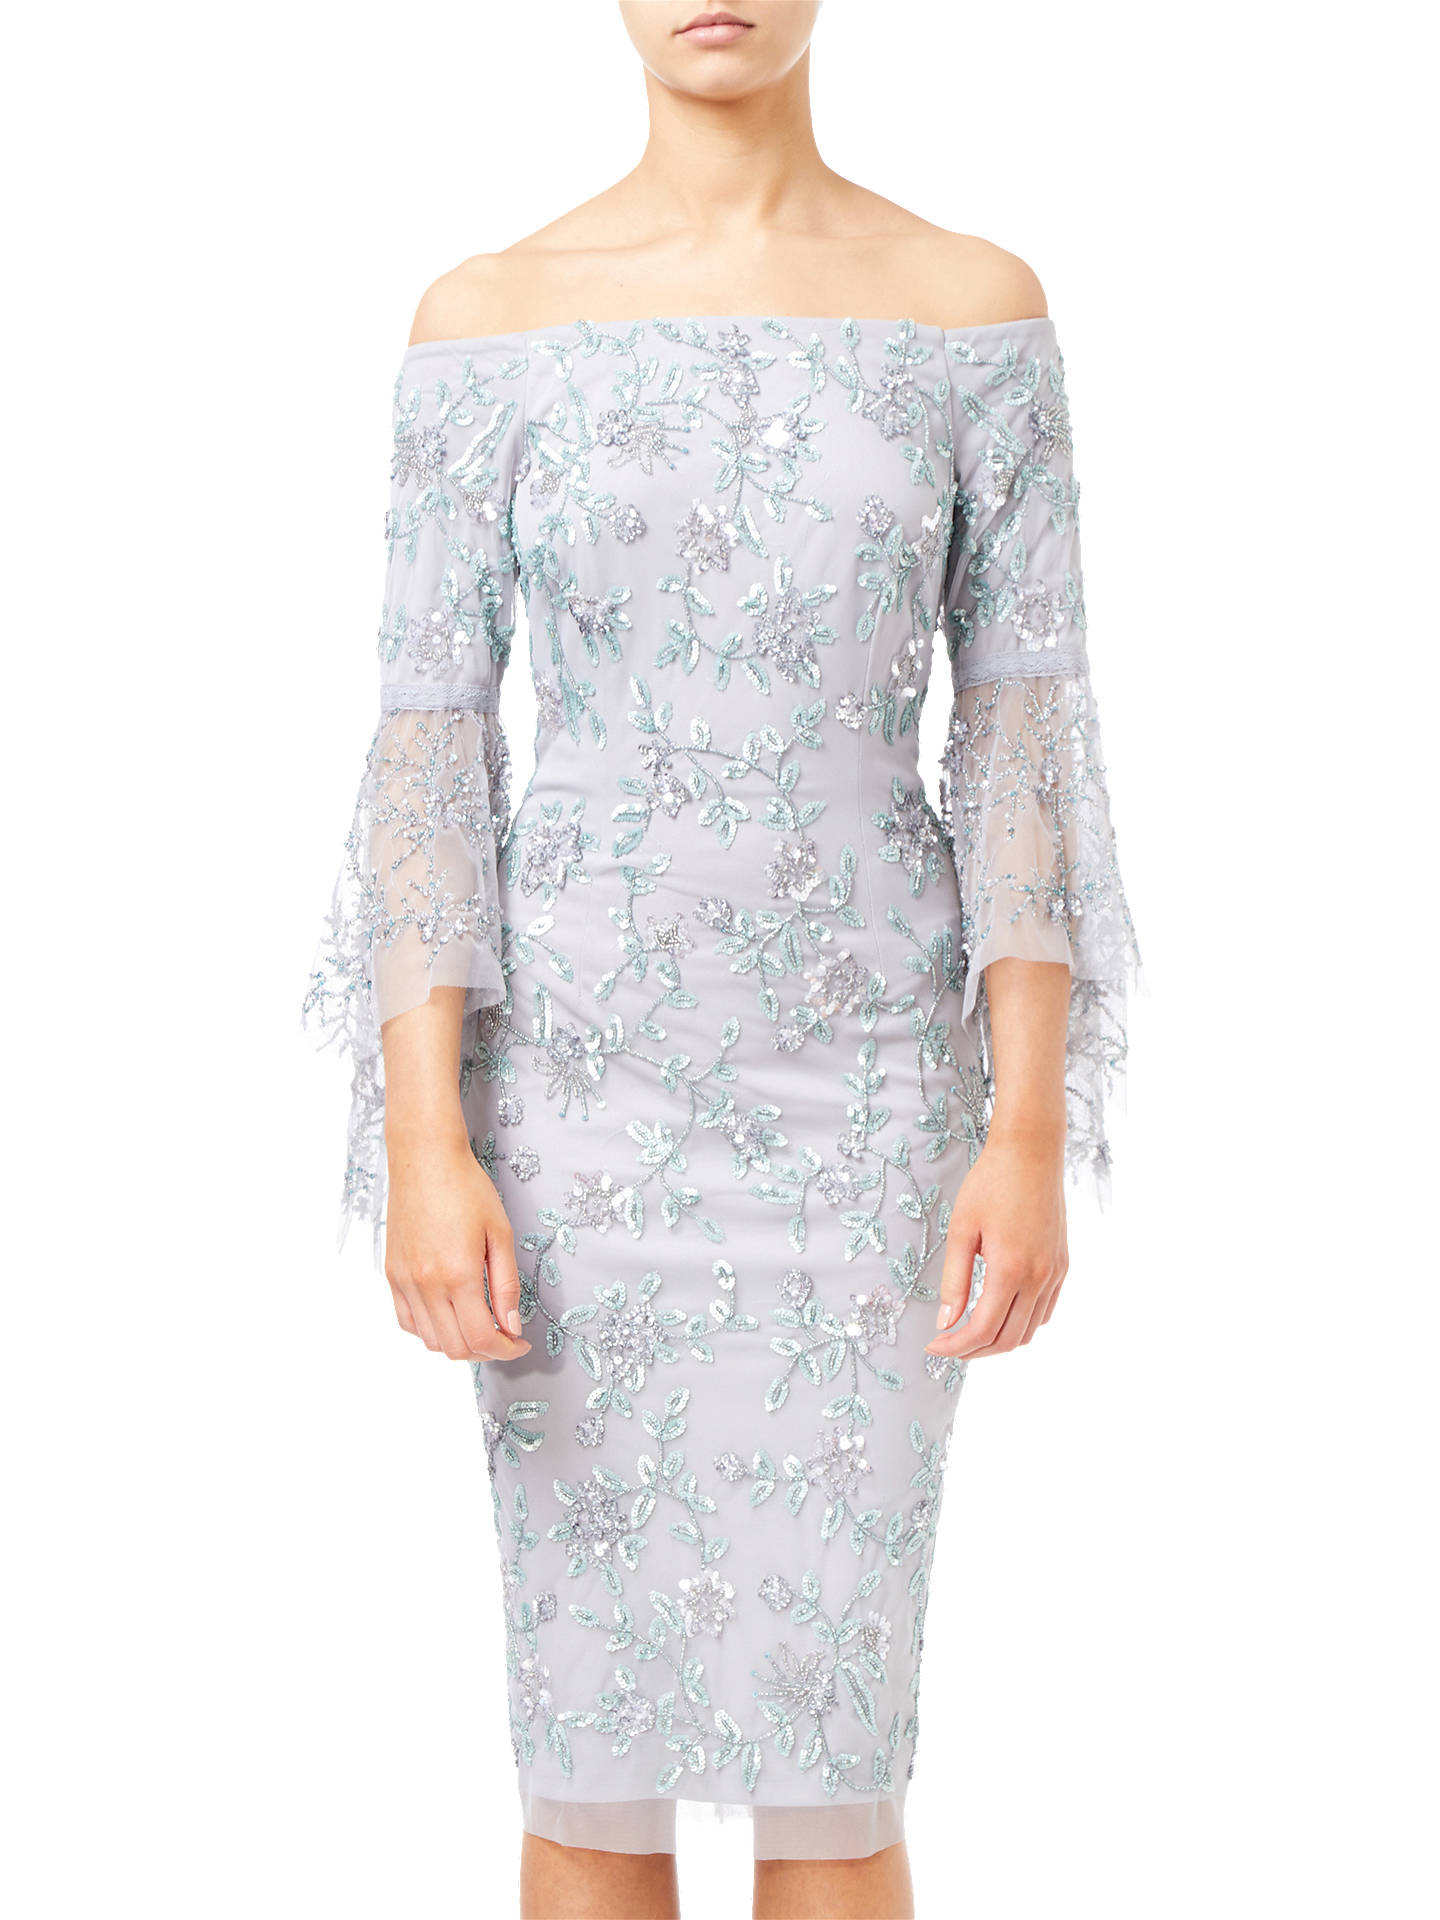 BuyAdrianna Papell Off Shoulder Bell Dress, Silver, 8 Online at johnlewis.com